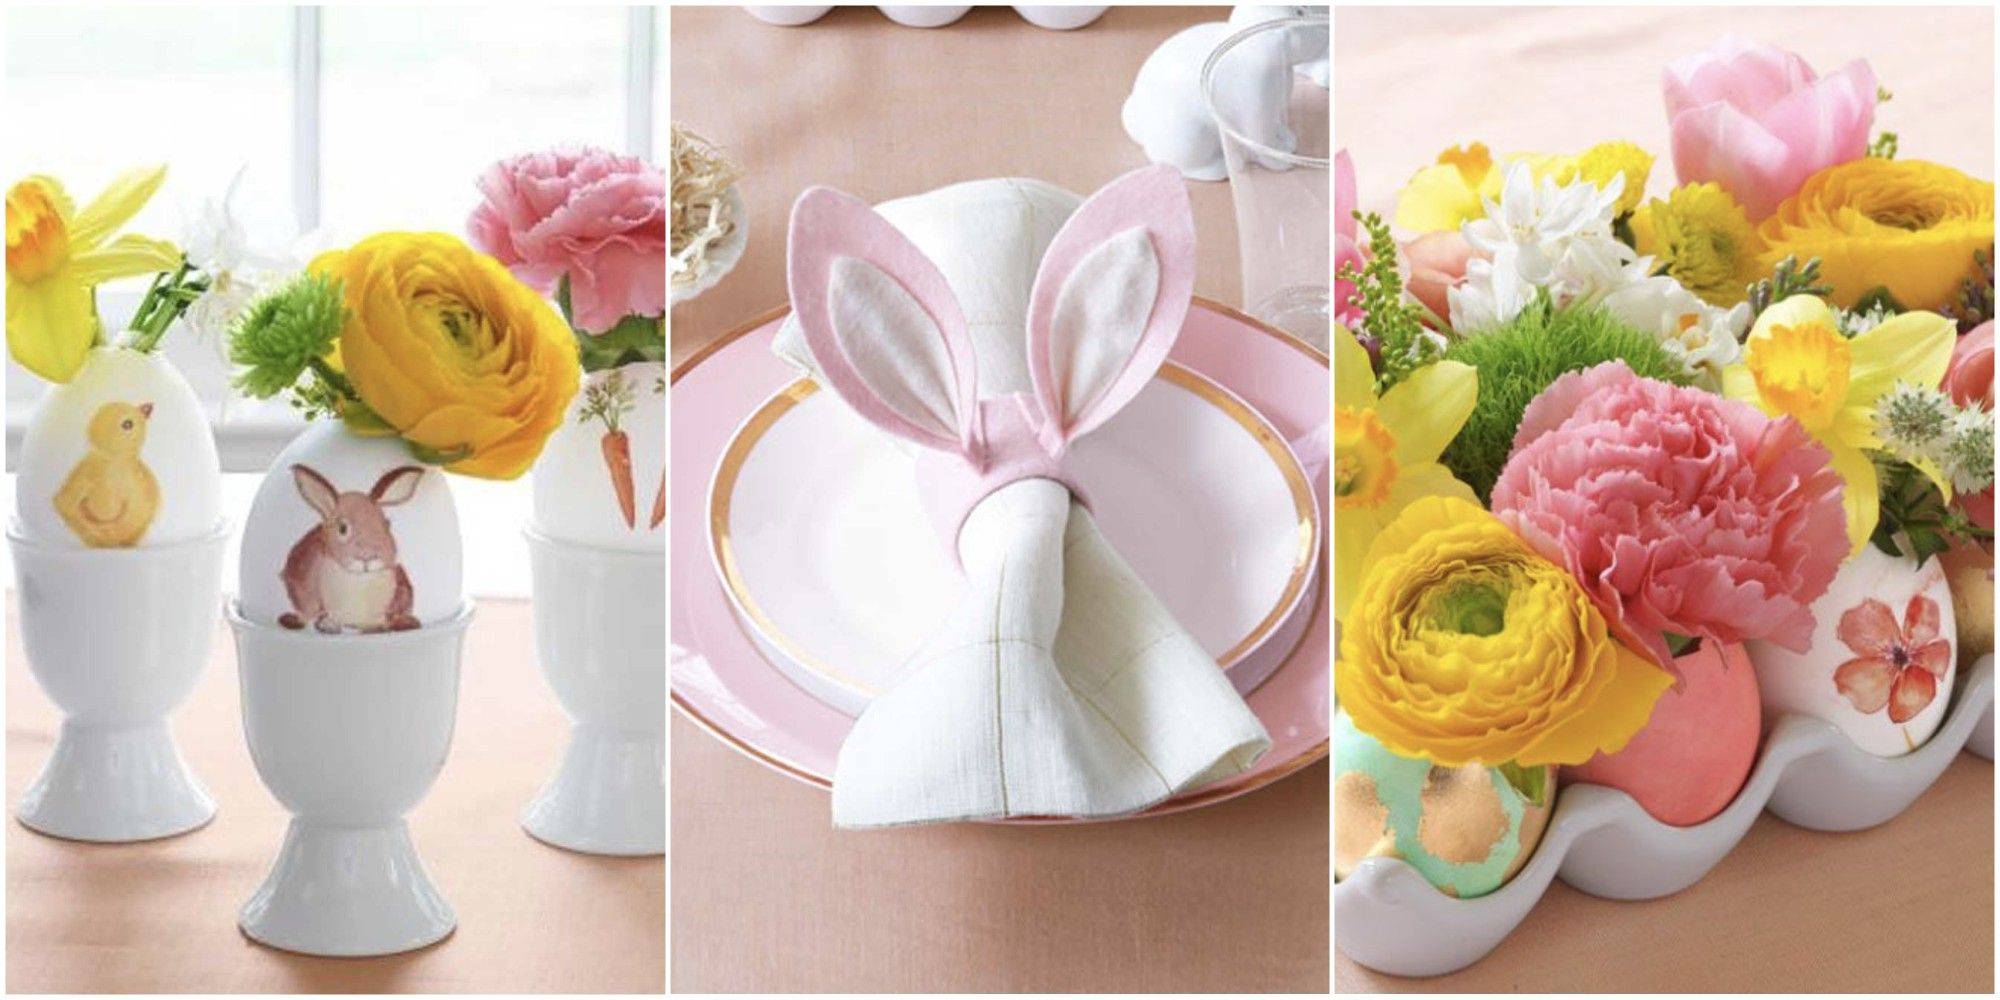 These DIY Designs Offer The Perfect Excuse To Turn Your Home Into An Easter  Bunnyu0027s Paradise. Between The Sweet Edible Treats And Sweet Table Art, ...